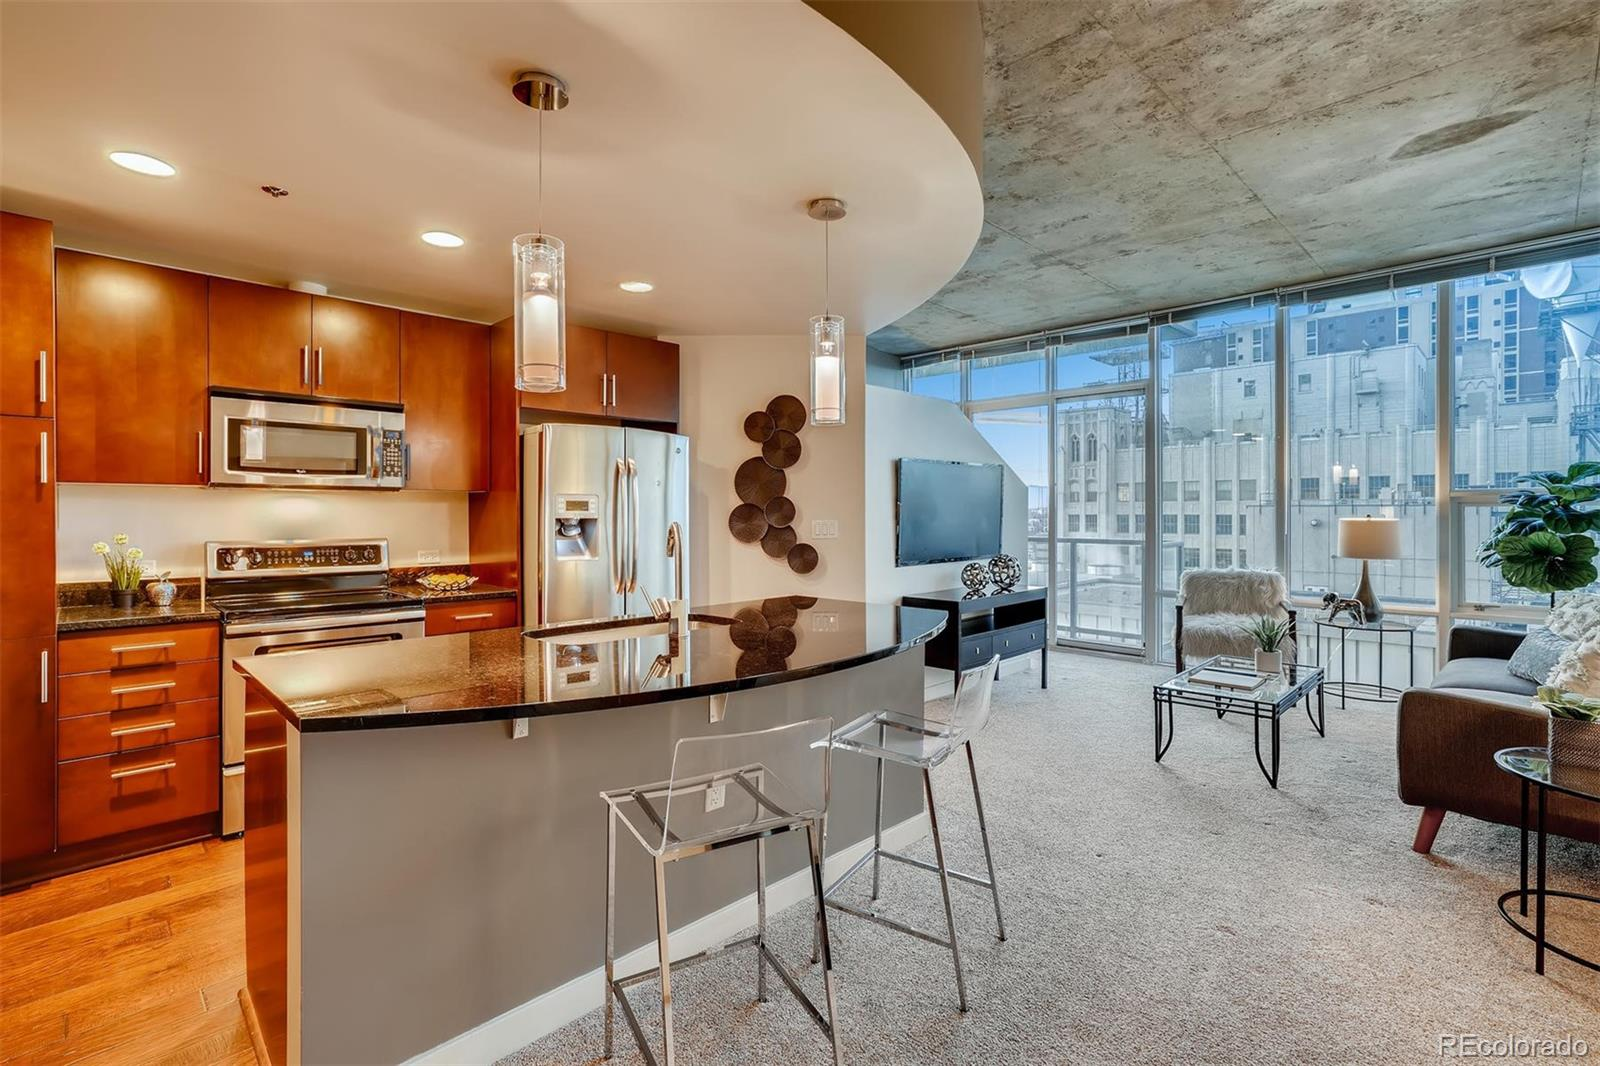 STEP INTO THIS SPIRE CONDO AND WATCH DOWNTOWN DENVER UNFOLD BEFORE YOUR EYES!  This 900 sq. ft. 1-bedroom + den home on the 20th floor of the highly desirable SPIRE building features fantastic floor-to-ceiling windows, a wide-open floor plan, a chef's kitchen with stainless steel appliances and slab granite counters, newer hardwood floors and newer carpeting. From the dedicated balcony, you can enjoy views of Downtown Denver and the Rocky Mountains. Or relax in the master bedroom and gaze at the city views with the nighttime lights. Also included: 1 deeded parking space and 1 storage space in the attached garage. Washer/Dryer included. The 42-story SPIRE is LEED-certified, with 40,000 sq ft of awesome amenities, including a rooftop pool which is heated & open year-round, two hot-tubs, extensive health club, The Zone multimedia lounge, the Box Office multimedia theater, garage dog park, yoga garden, outdoor grilling area, 10th-floor private event lounge, 24-hour courtesy desk, fully-furnished SPIRE guest suites, special accommodations for electric vehicles, and modern security & access control systems. Very well-maintained building! SPIRE Denver has the fast internet coming soon-1 gig dedicated to each condo. Come home to Downtown Denver's SPIRE -- life is better here!